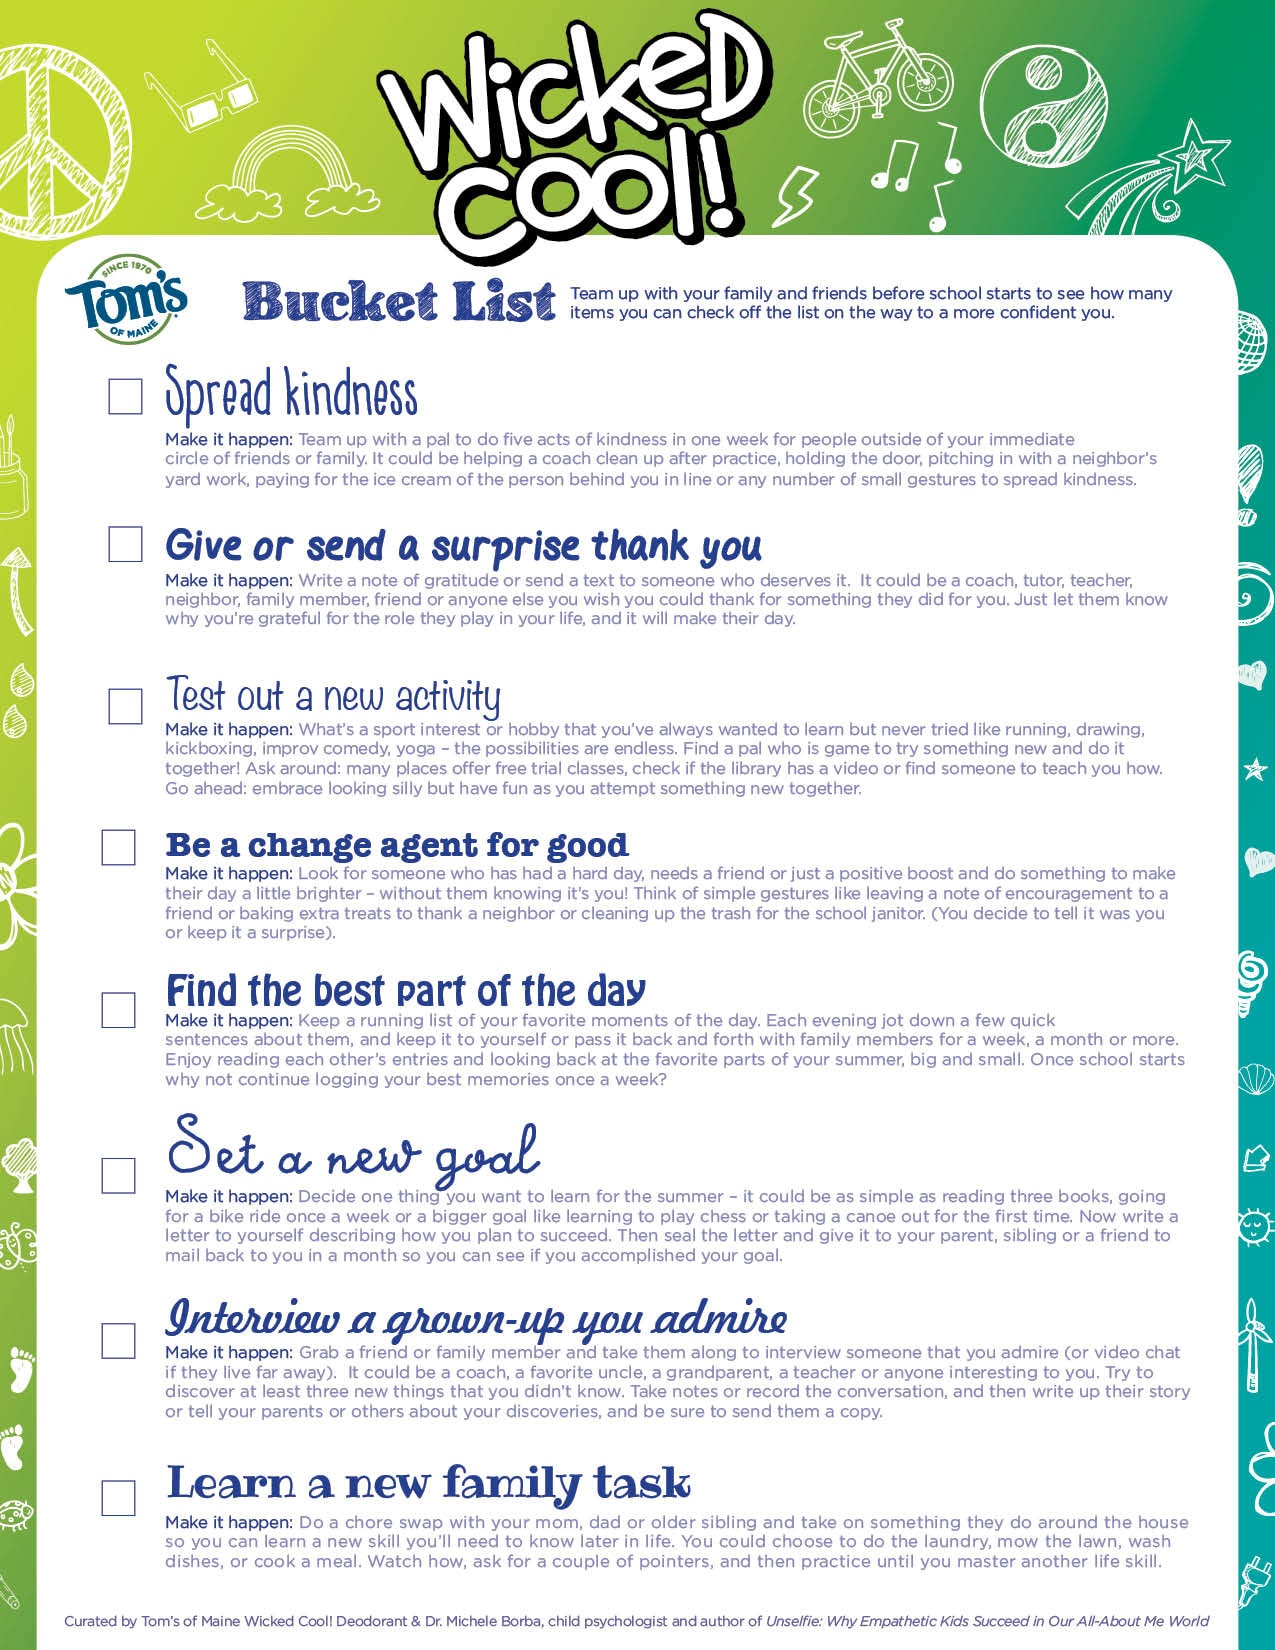 Wicked Cool! Bucket List Printable